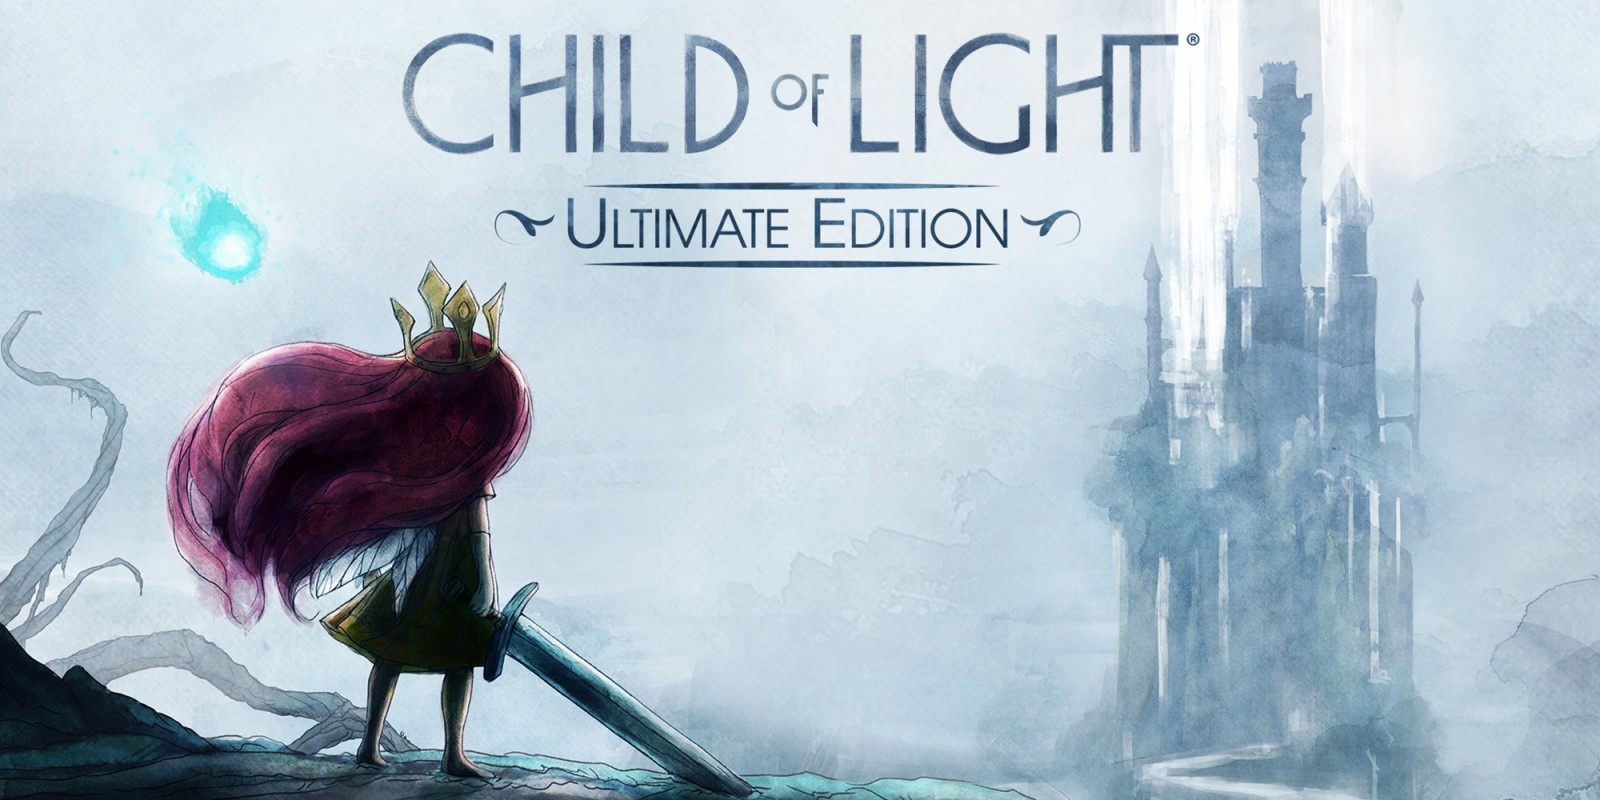 2 Way Light Switch >> Child of Light® Ultimate Edition | Nintendo Switch download software | Games | Nintendo